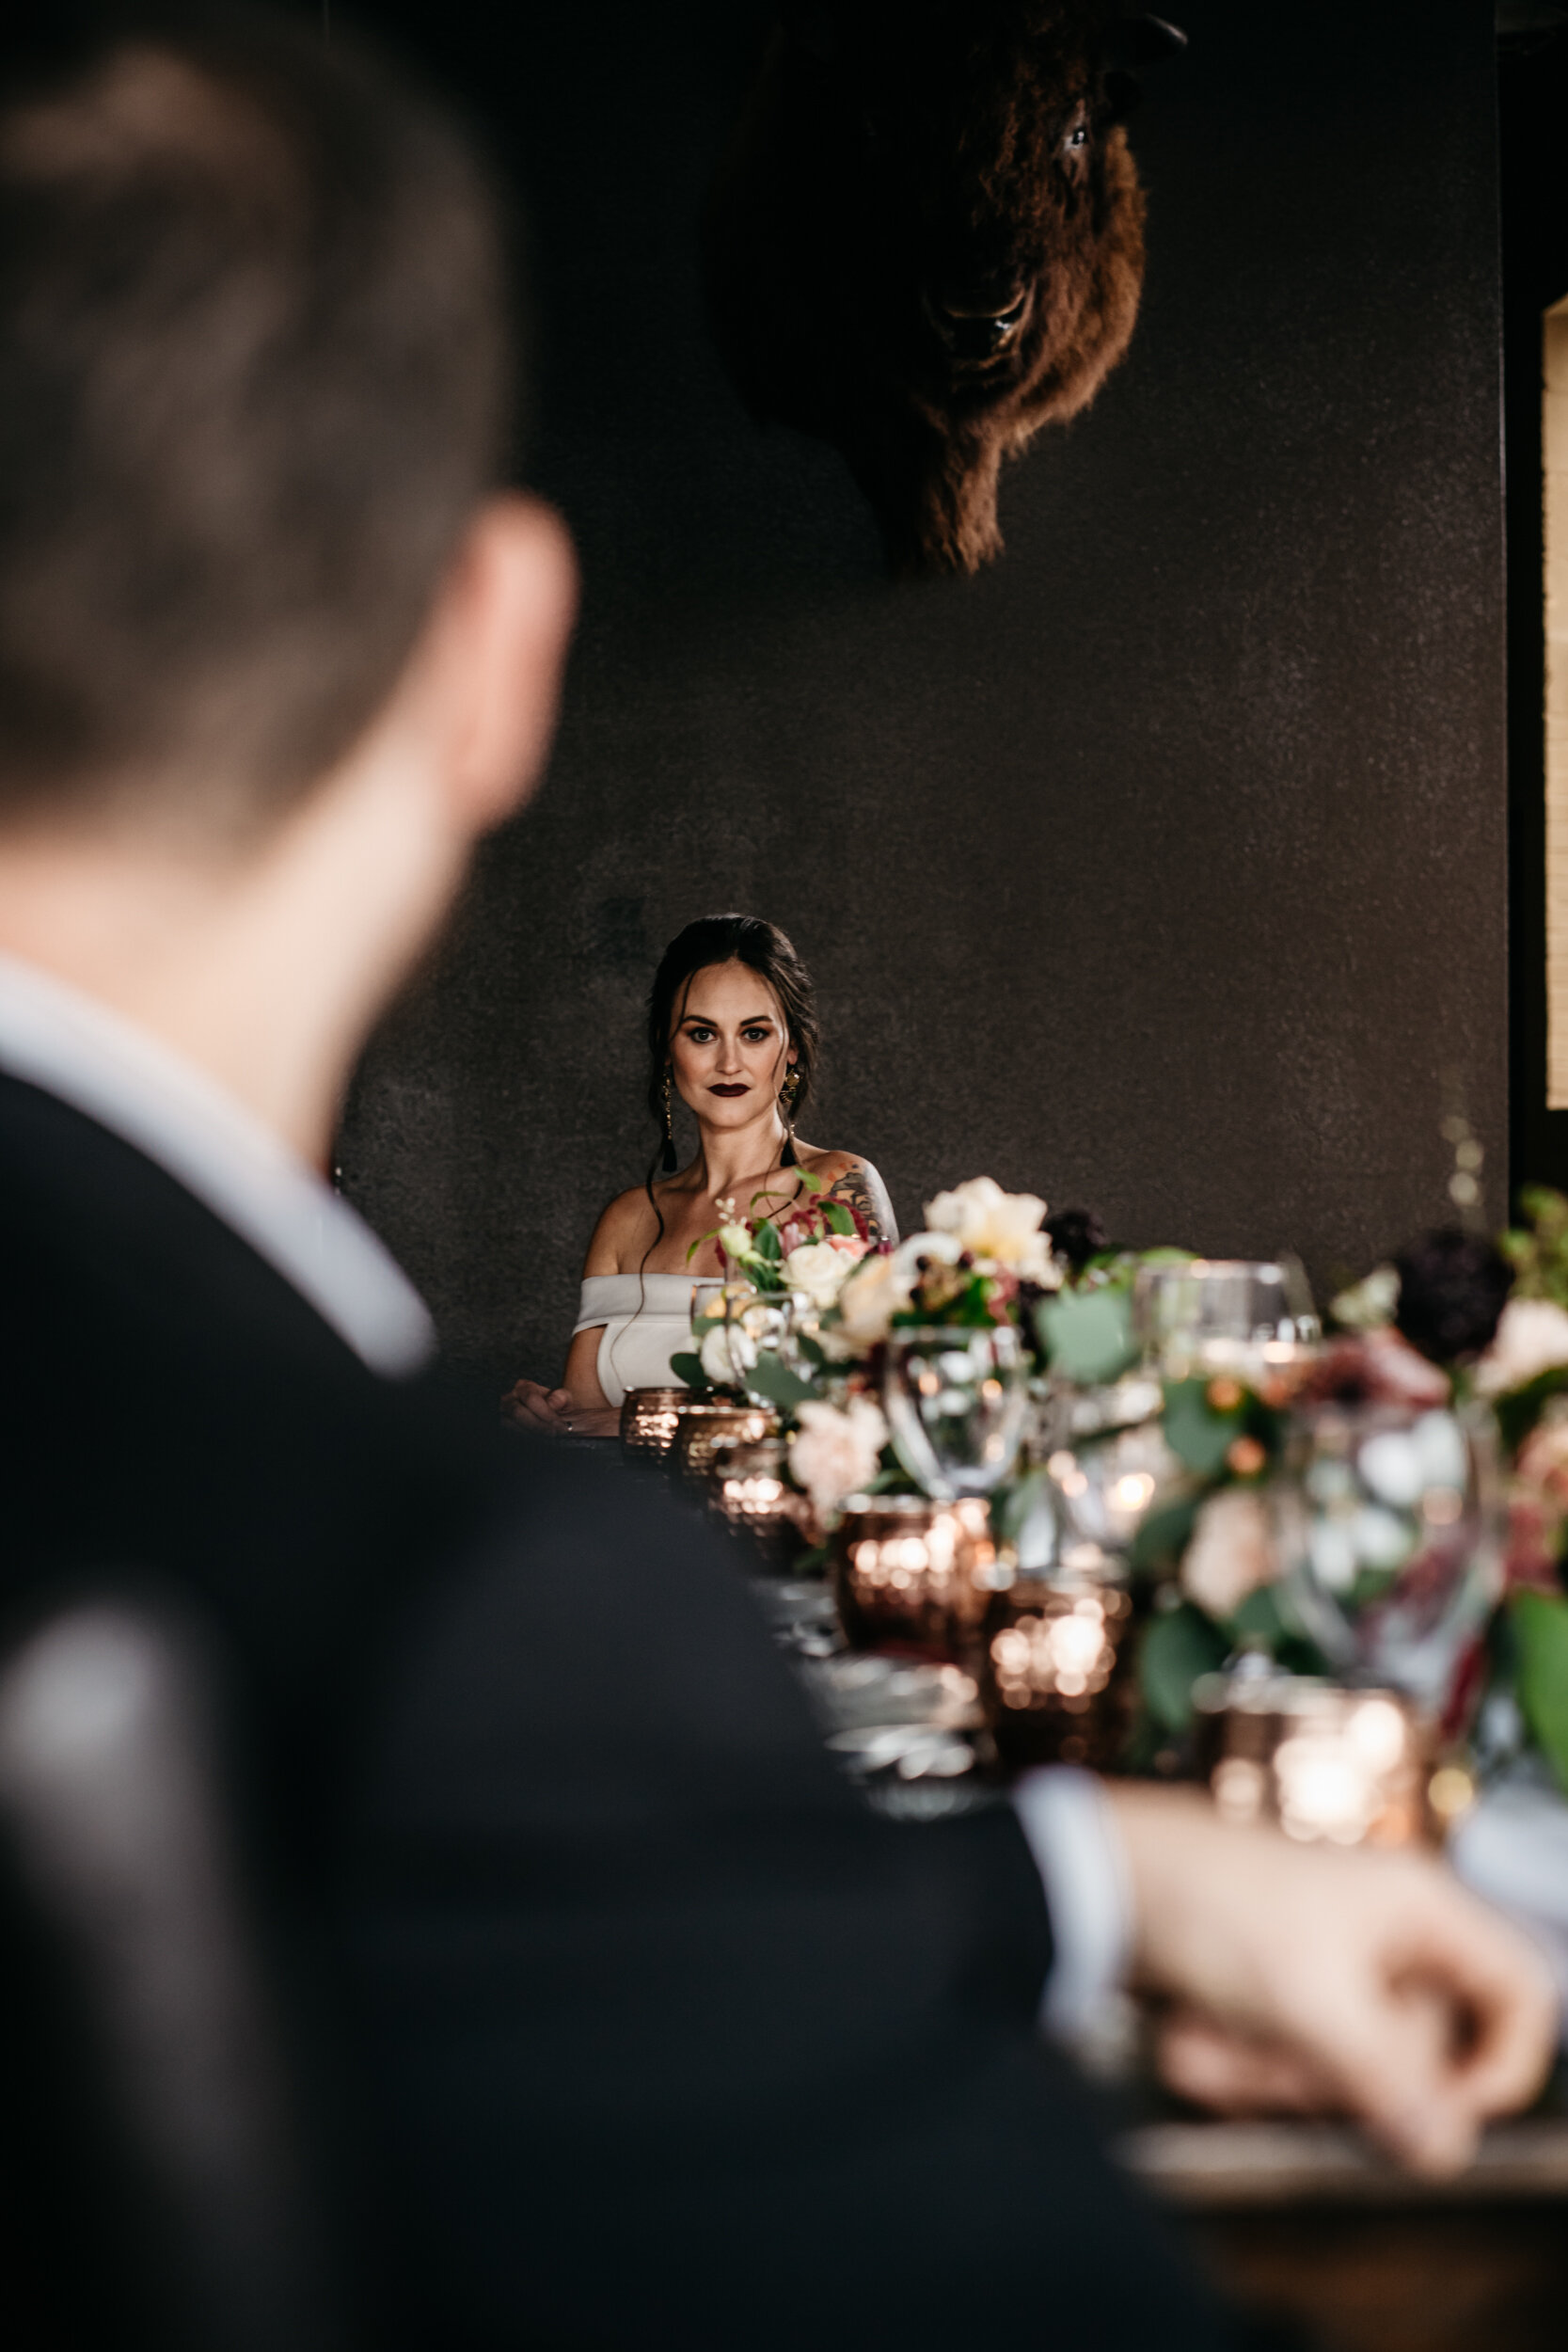 Bride sitting at edge of long table for moody, romantic distillery wedding designed by wedding planner Unions With Celia at Missouri Spirits. Photographed by Sean Reid.